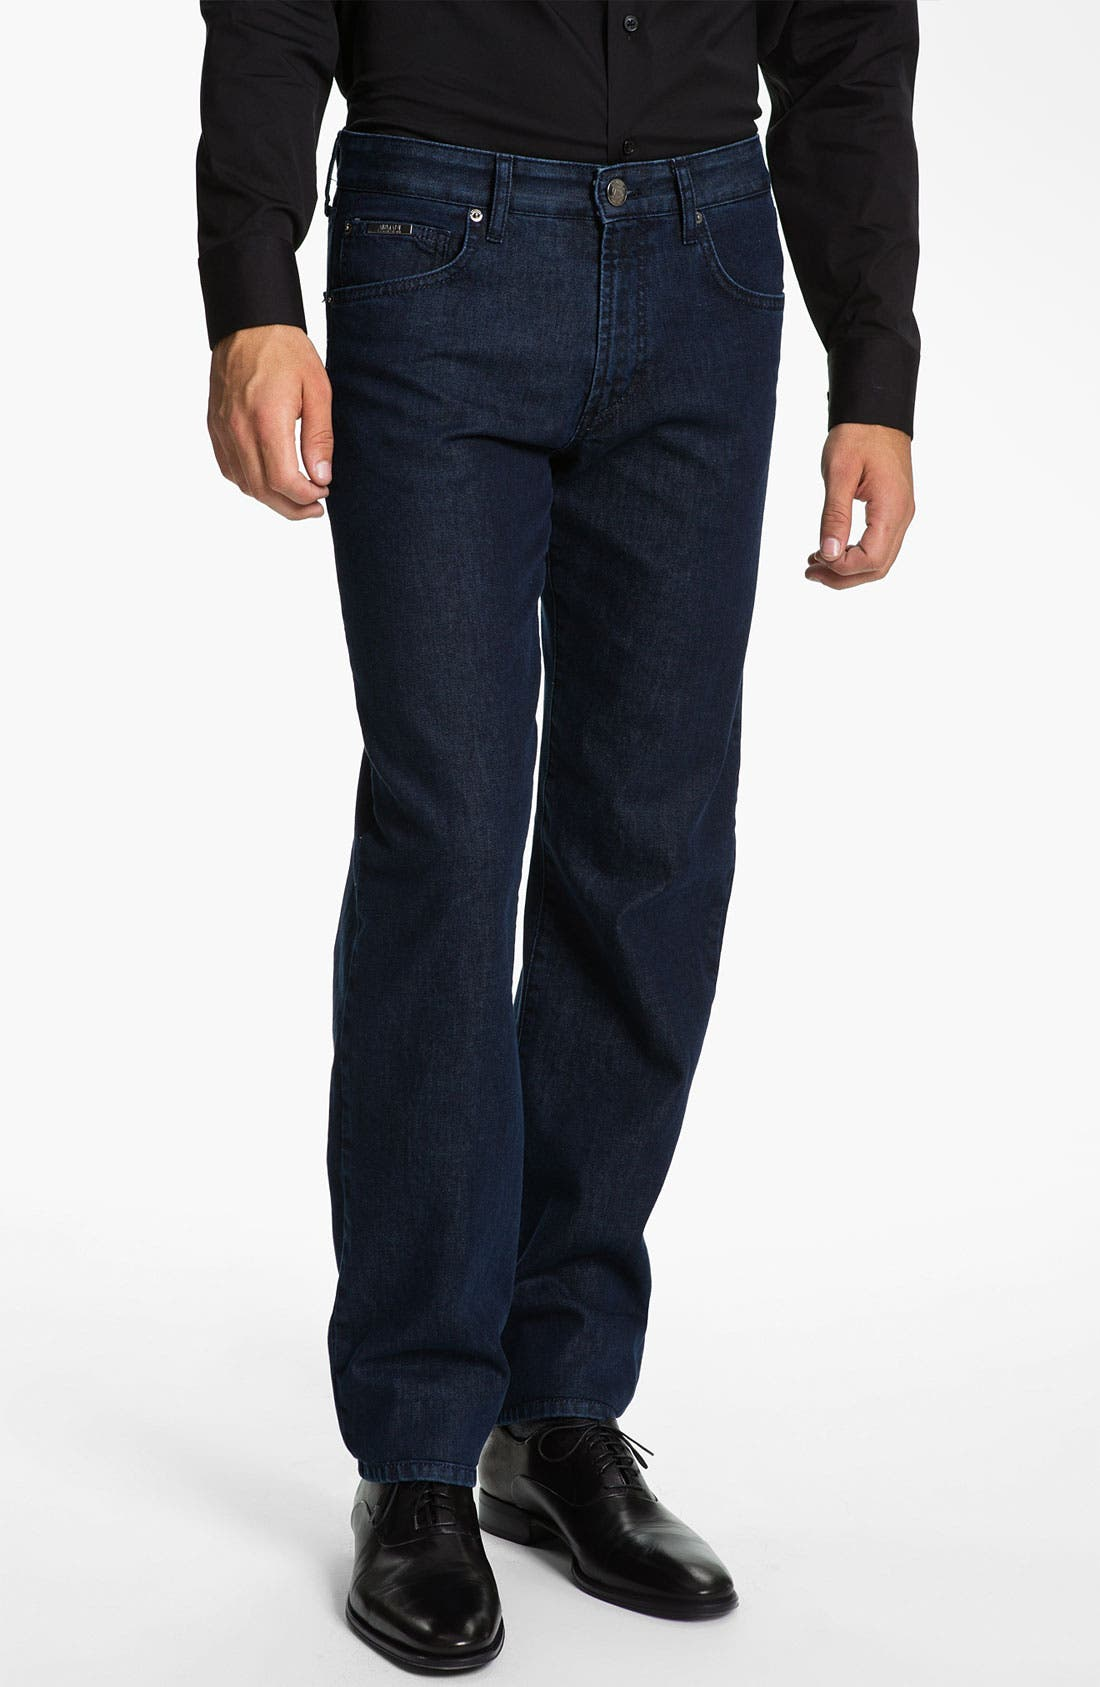 Alternate Image 1 Selected - Armani Collezioni Straight Leg Jeans (Navy Wash)